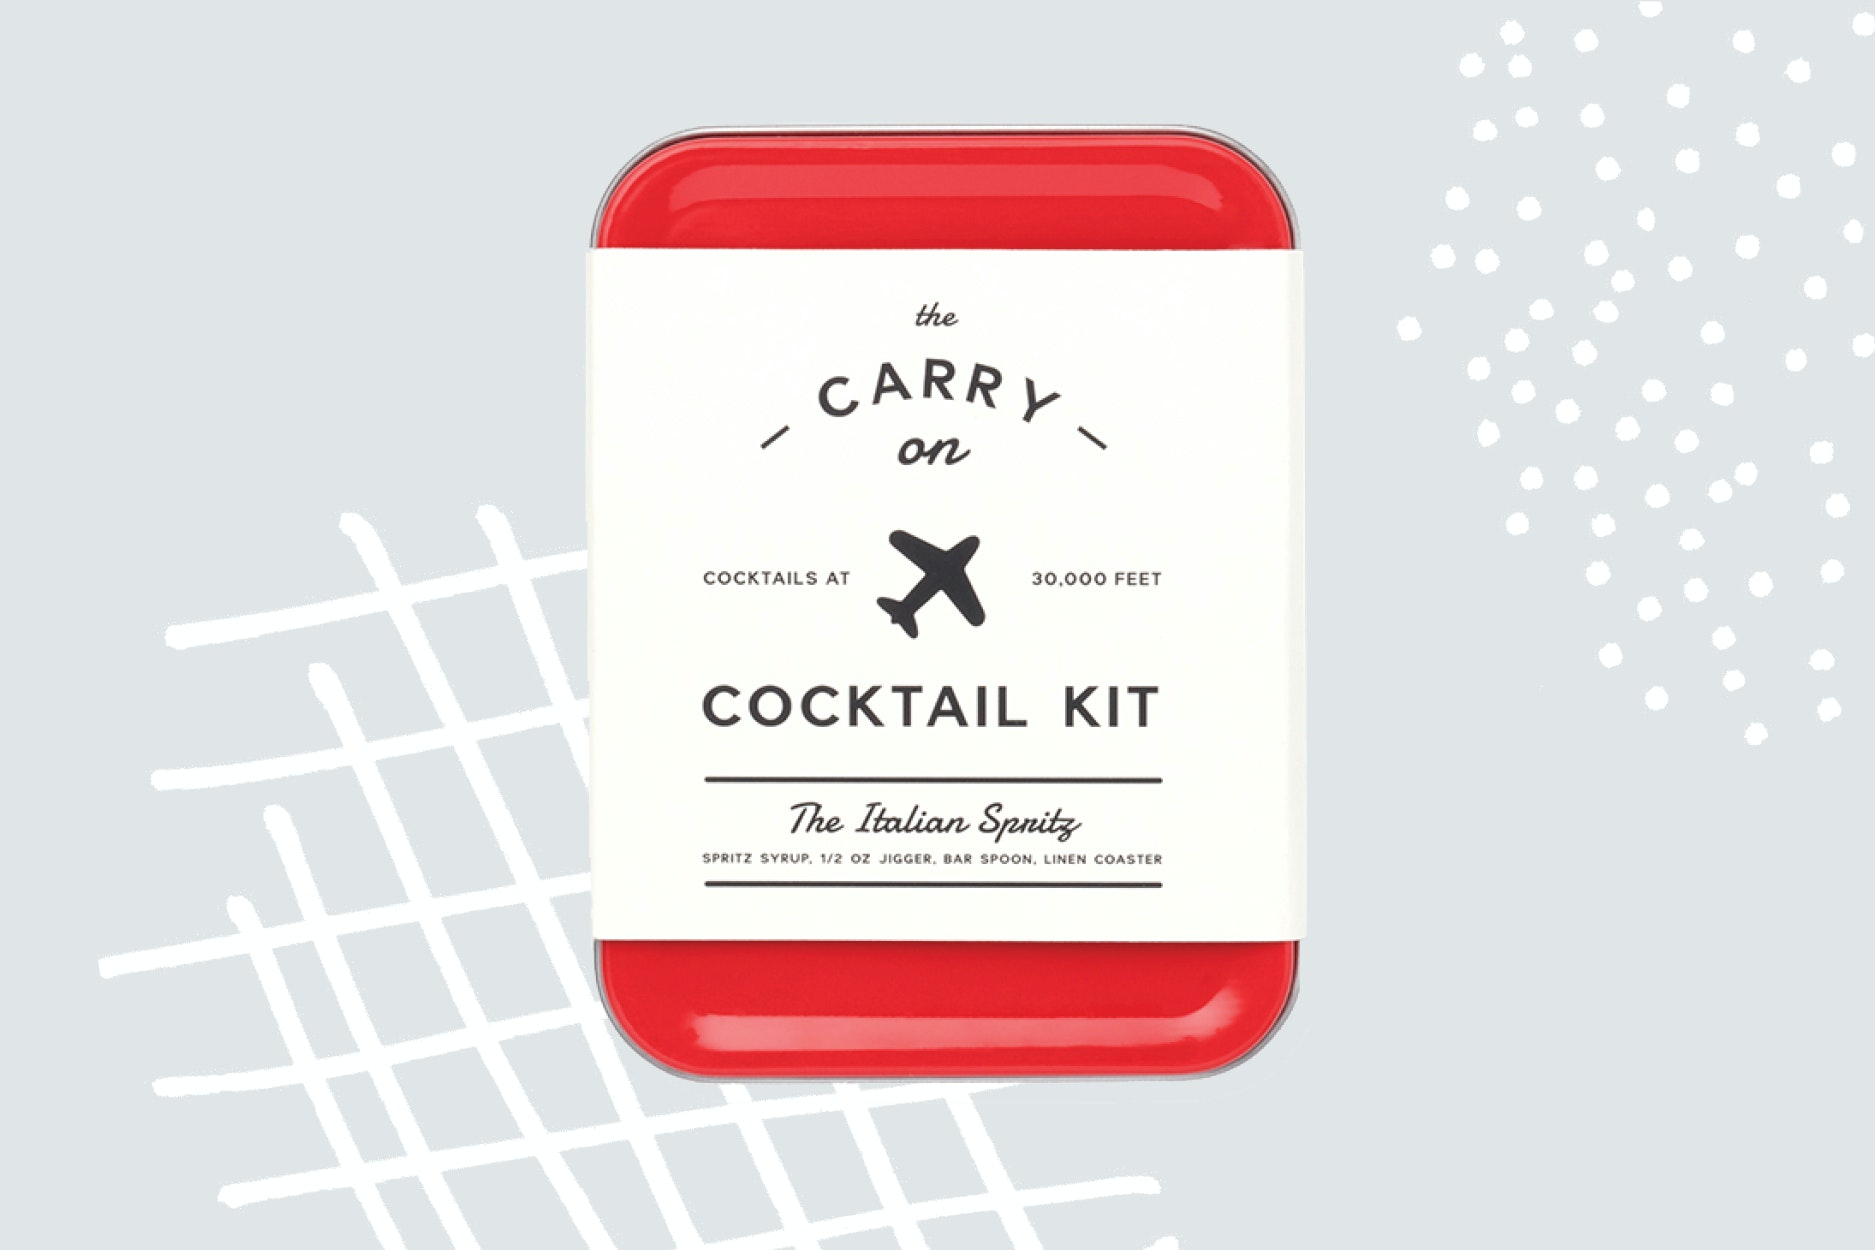 W&P Design adds Italian spritz to its lengthy carryon cocktail repertoire.